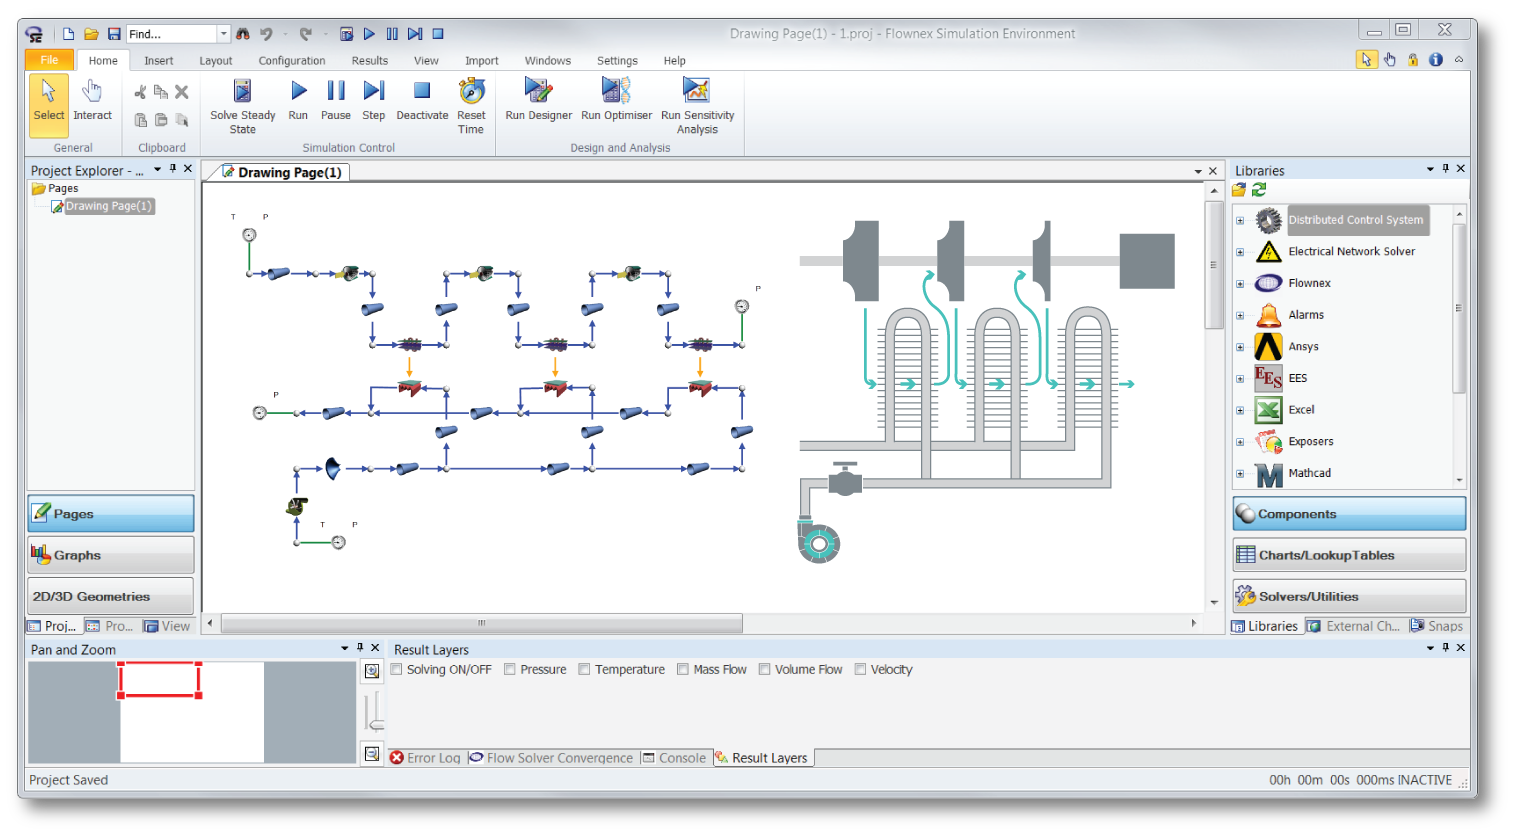 Flownex compressed air simulation  example with for compressor selection and pipe sizing